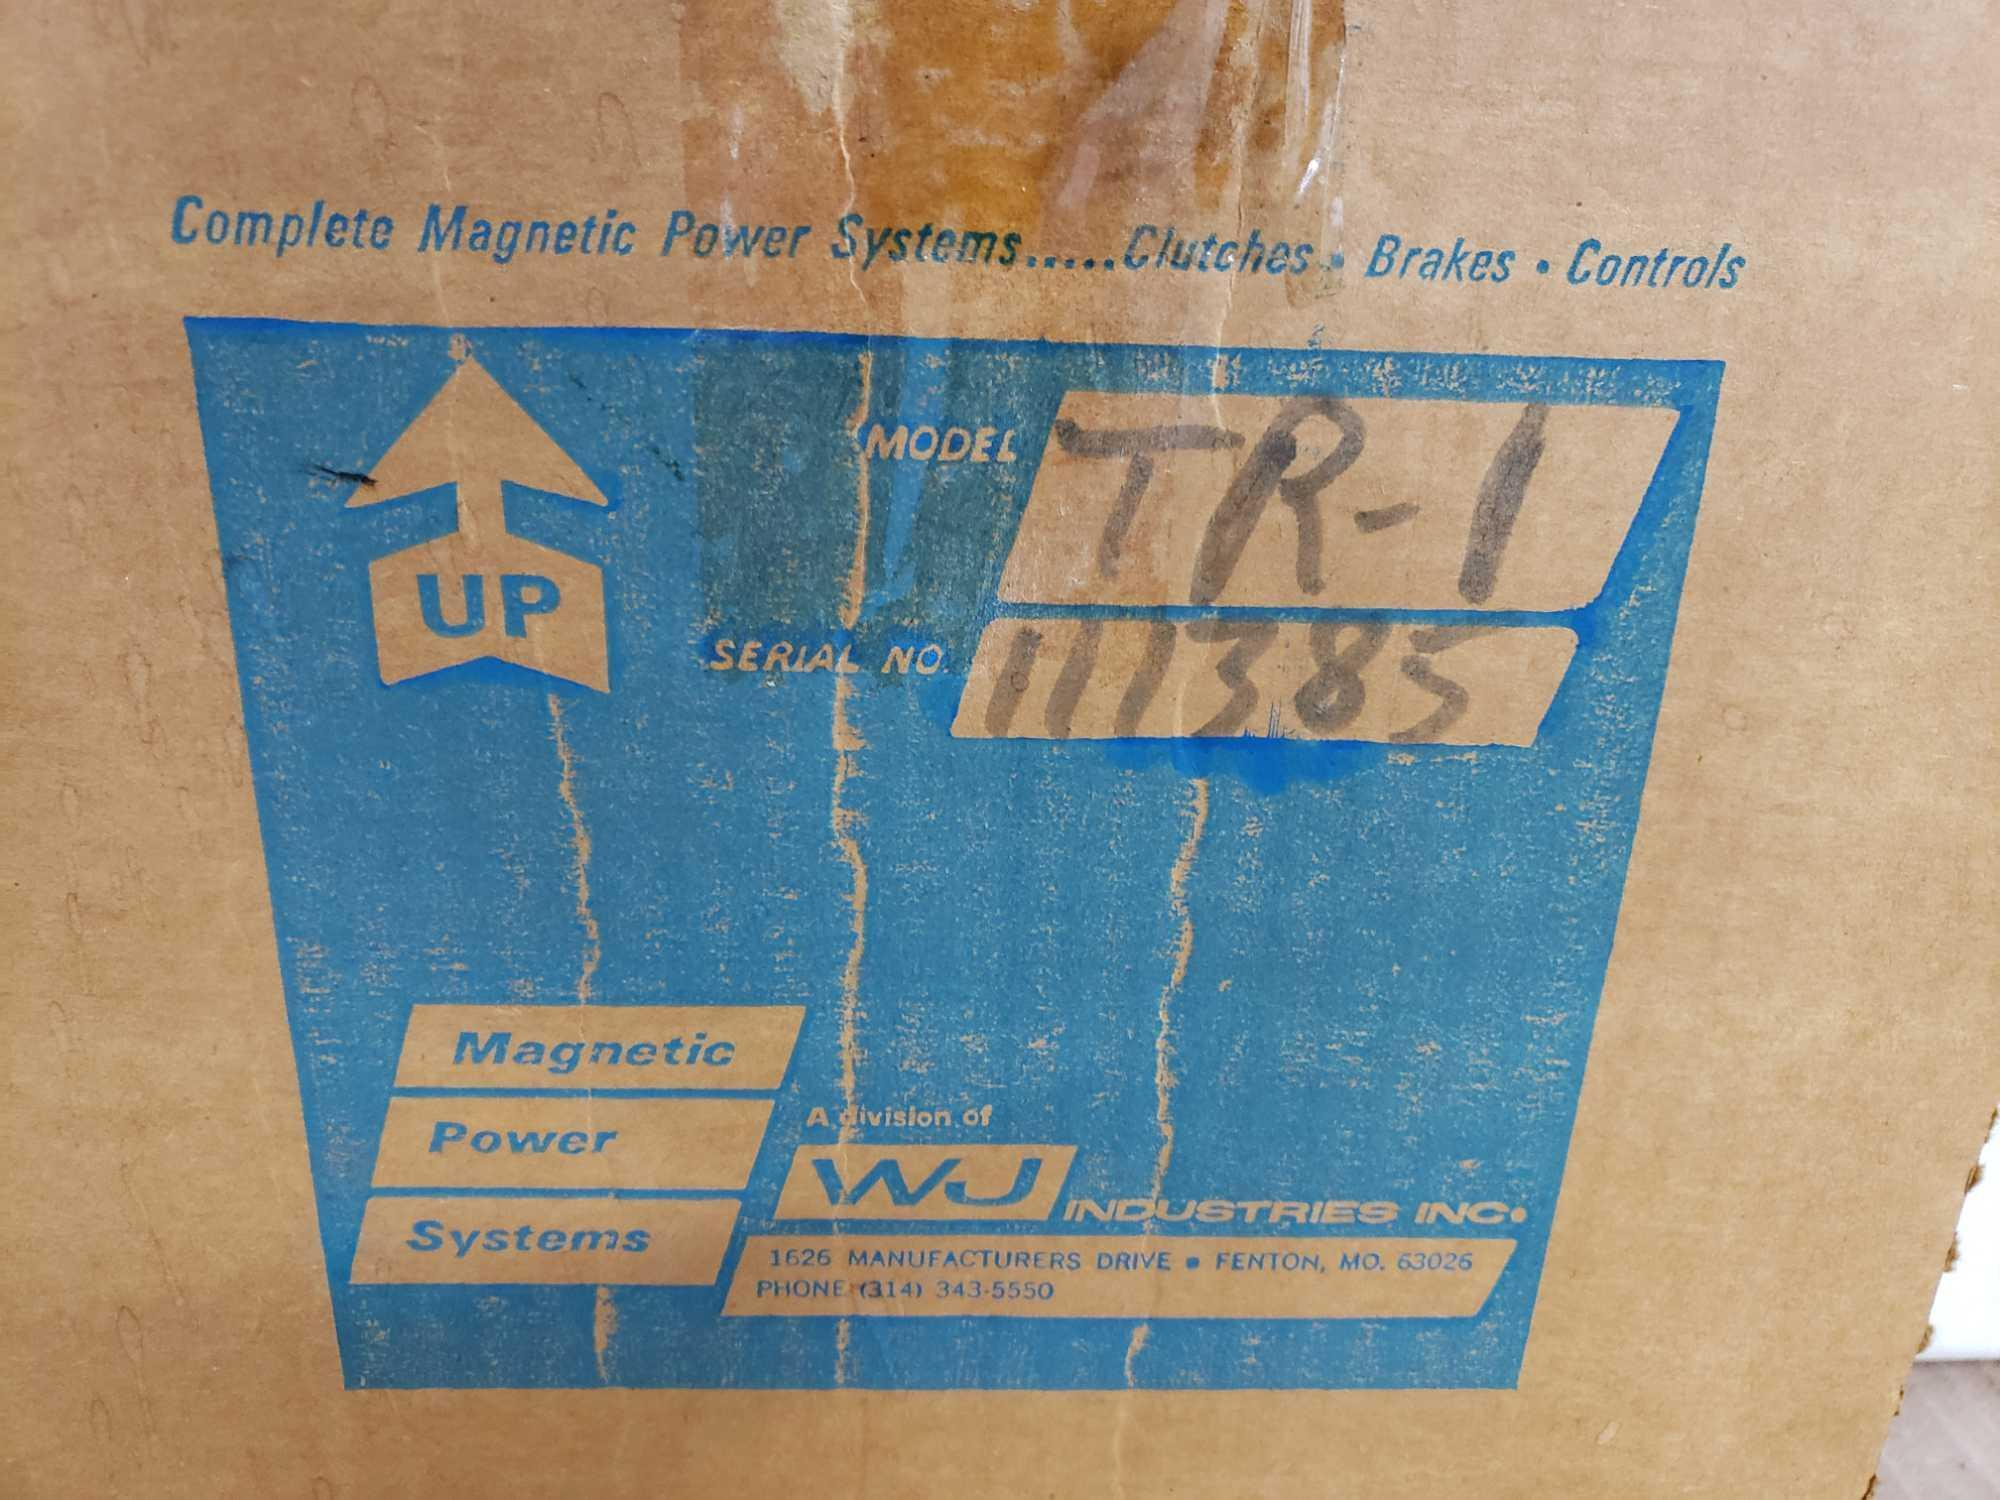 Magpowr magnetic power systems model TR-I tension readout. New in box. - Image 3 of 5